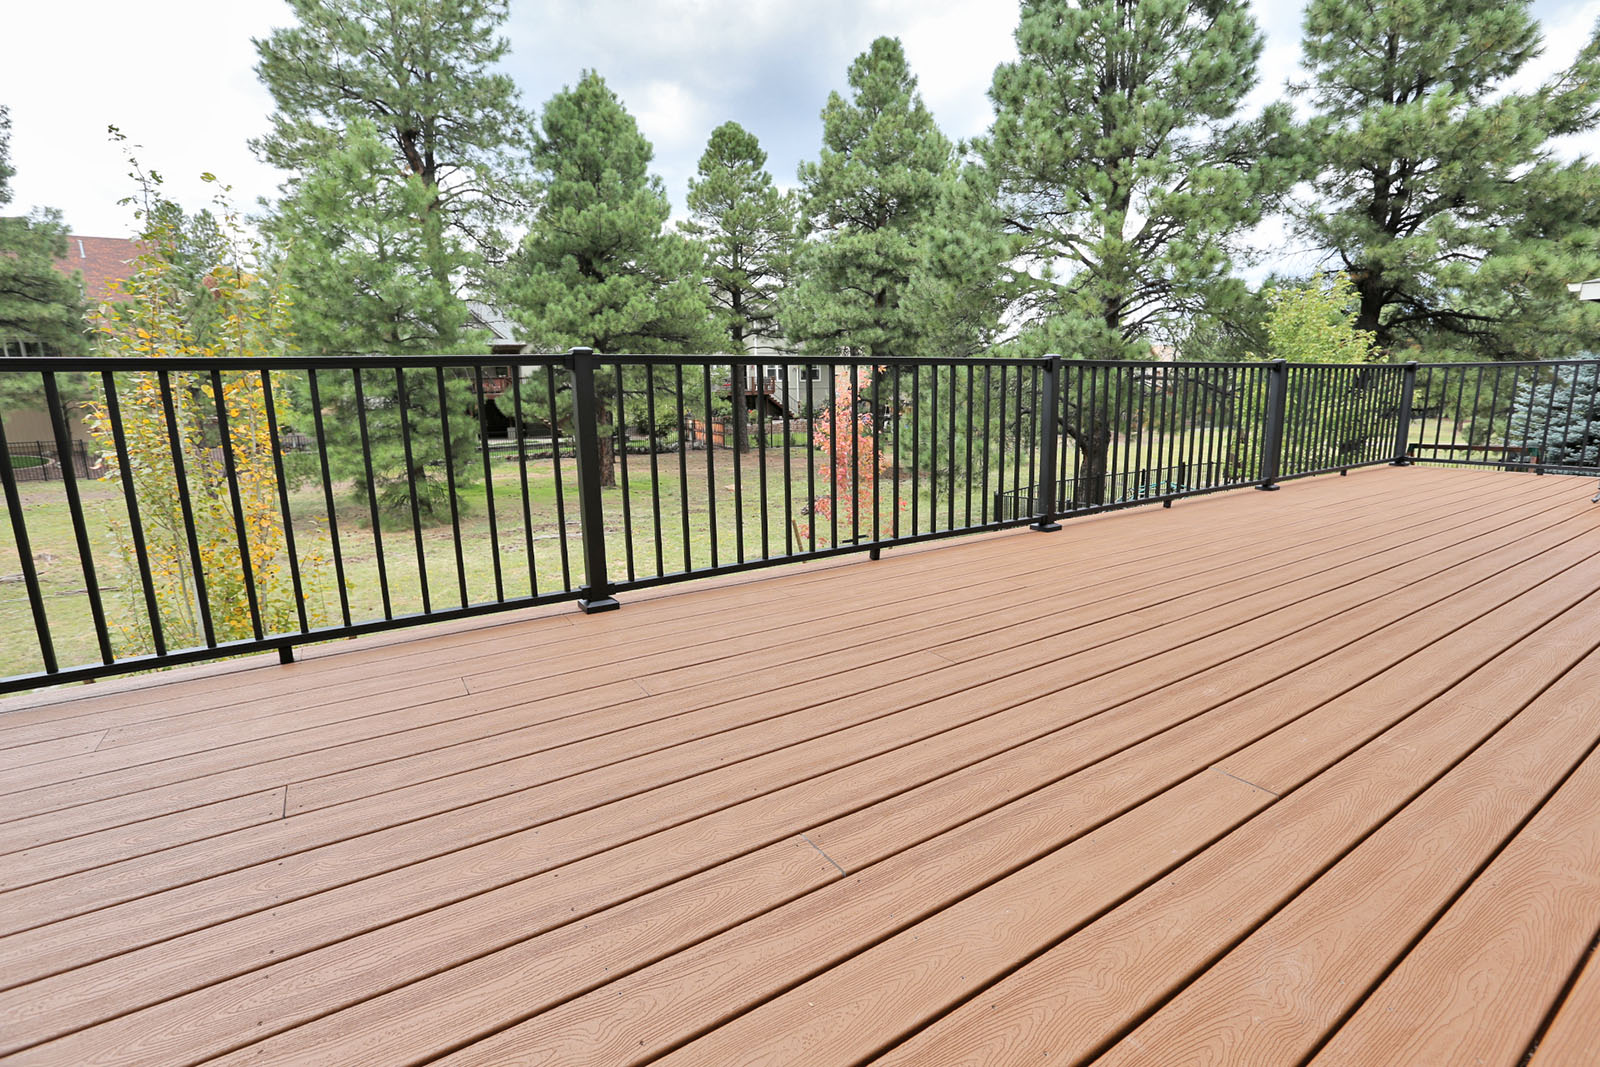 Trex Transcends decking with Trex Reveal Railings